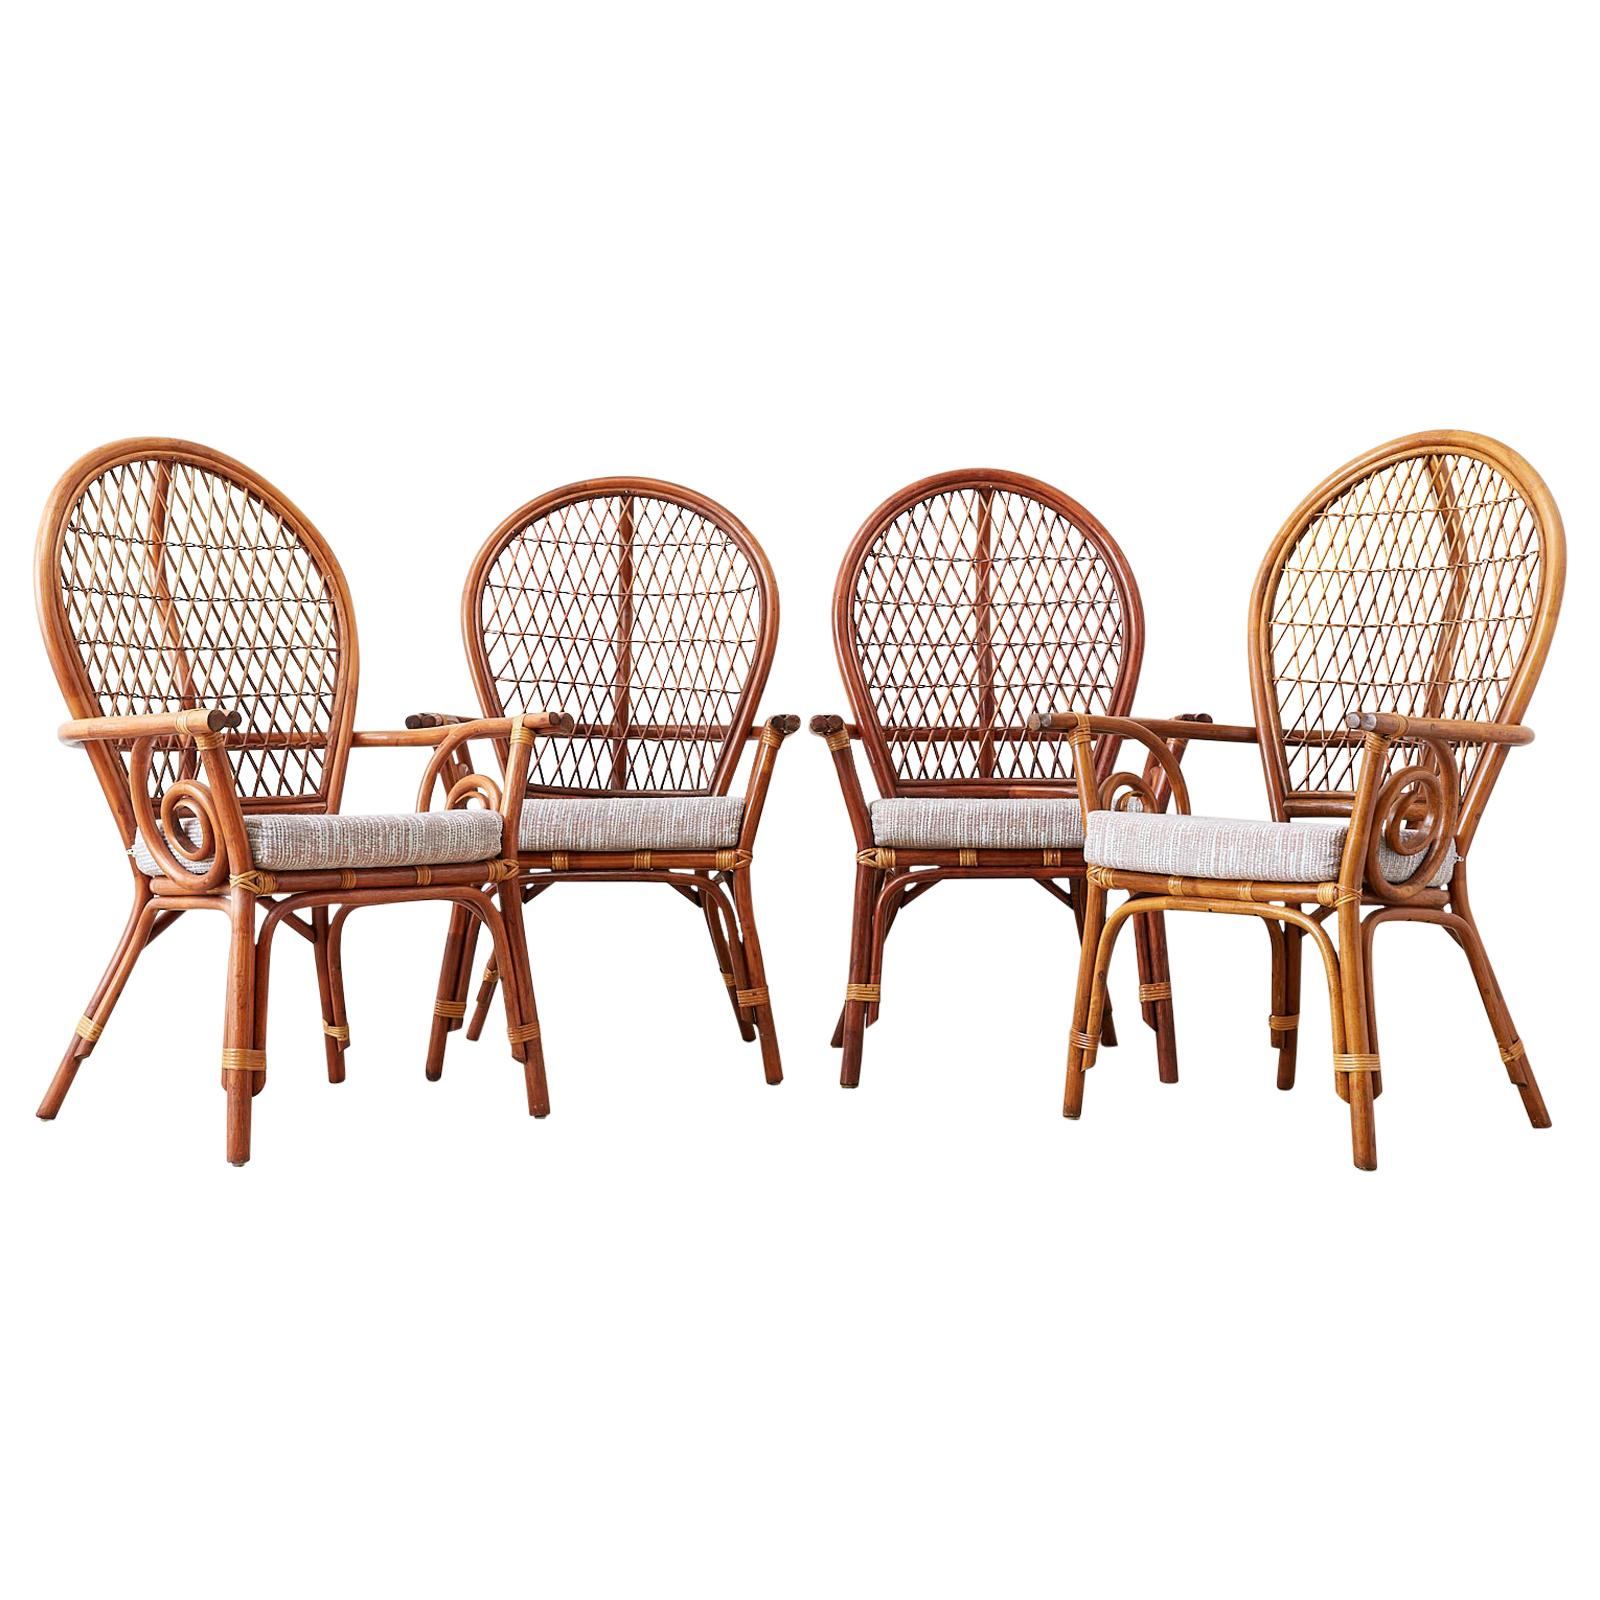 Set of Four Bamboo Rattan Peacock Dining Armchairs